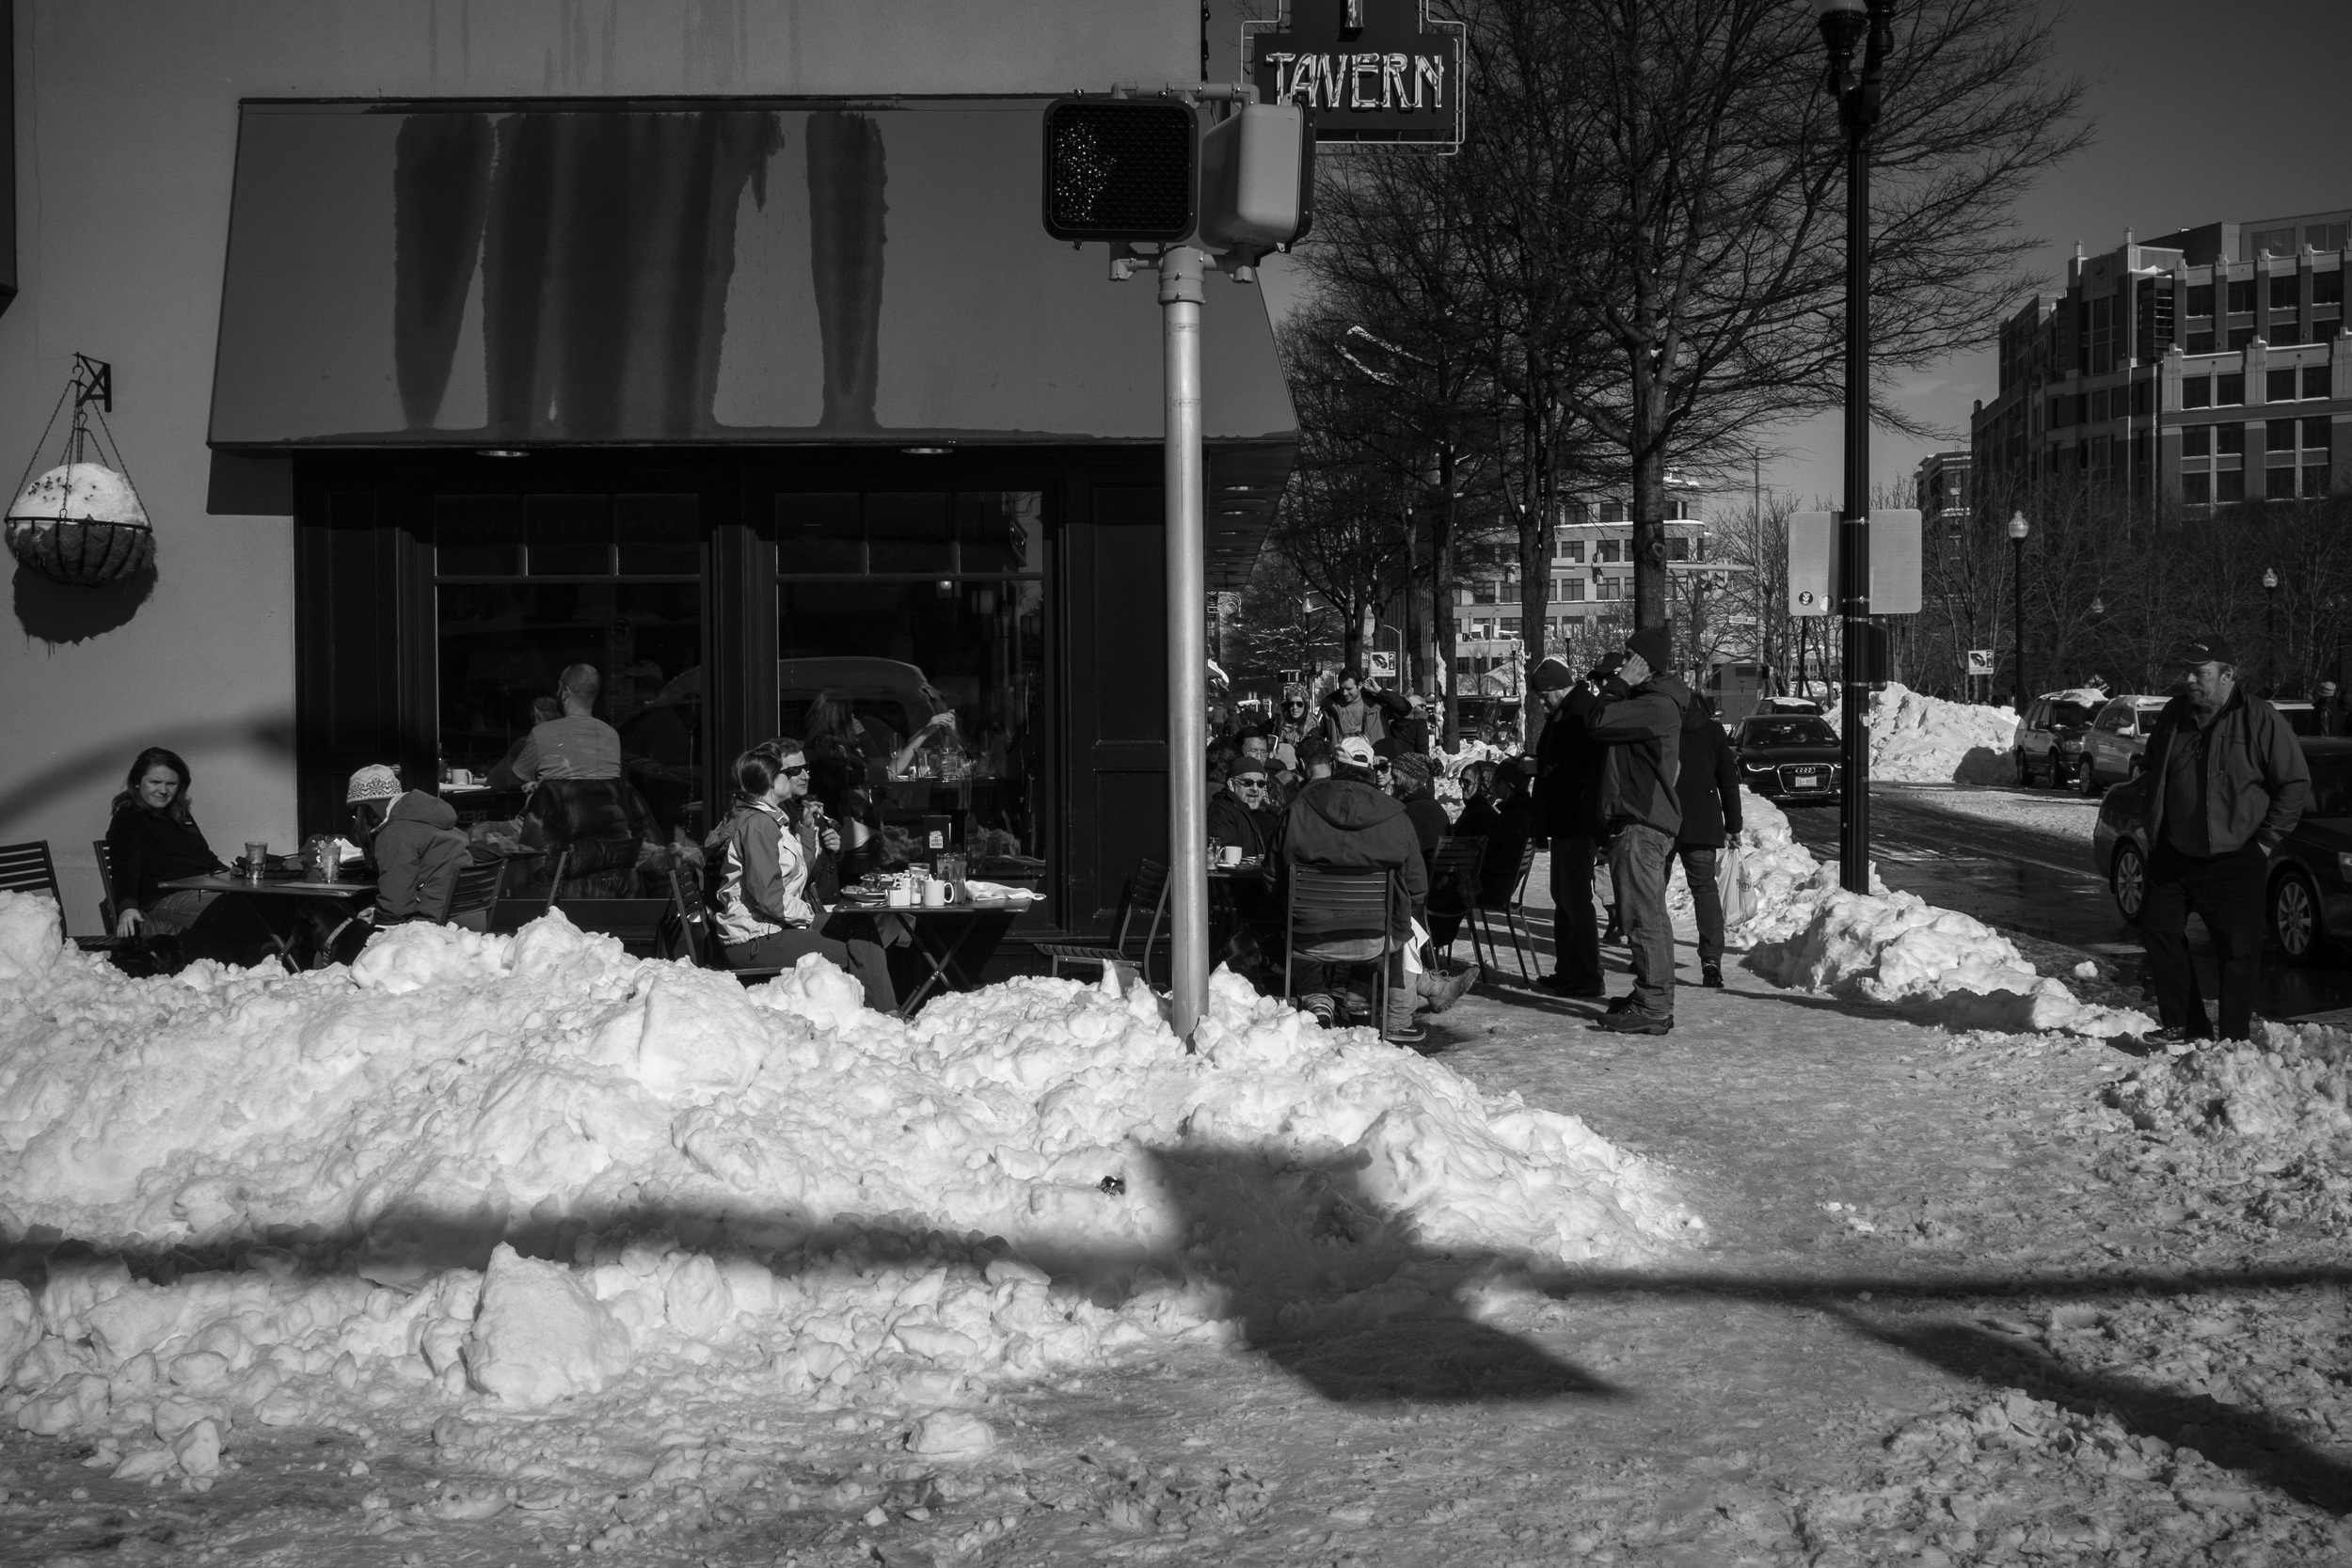 I probably could have spent much more time with this scene, but the juxtaposition of dining al fresco just 13 hours after the blizzard ended tells a story about the Clarendon neighborhood in Arlington.